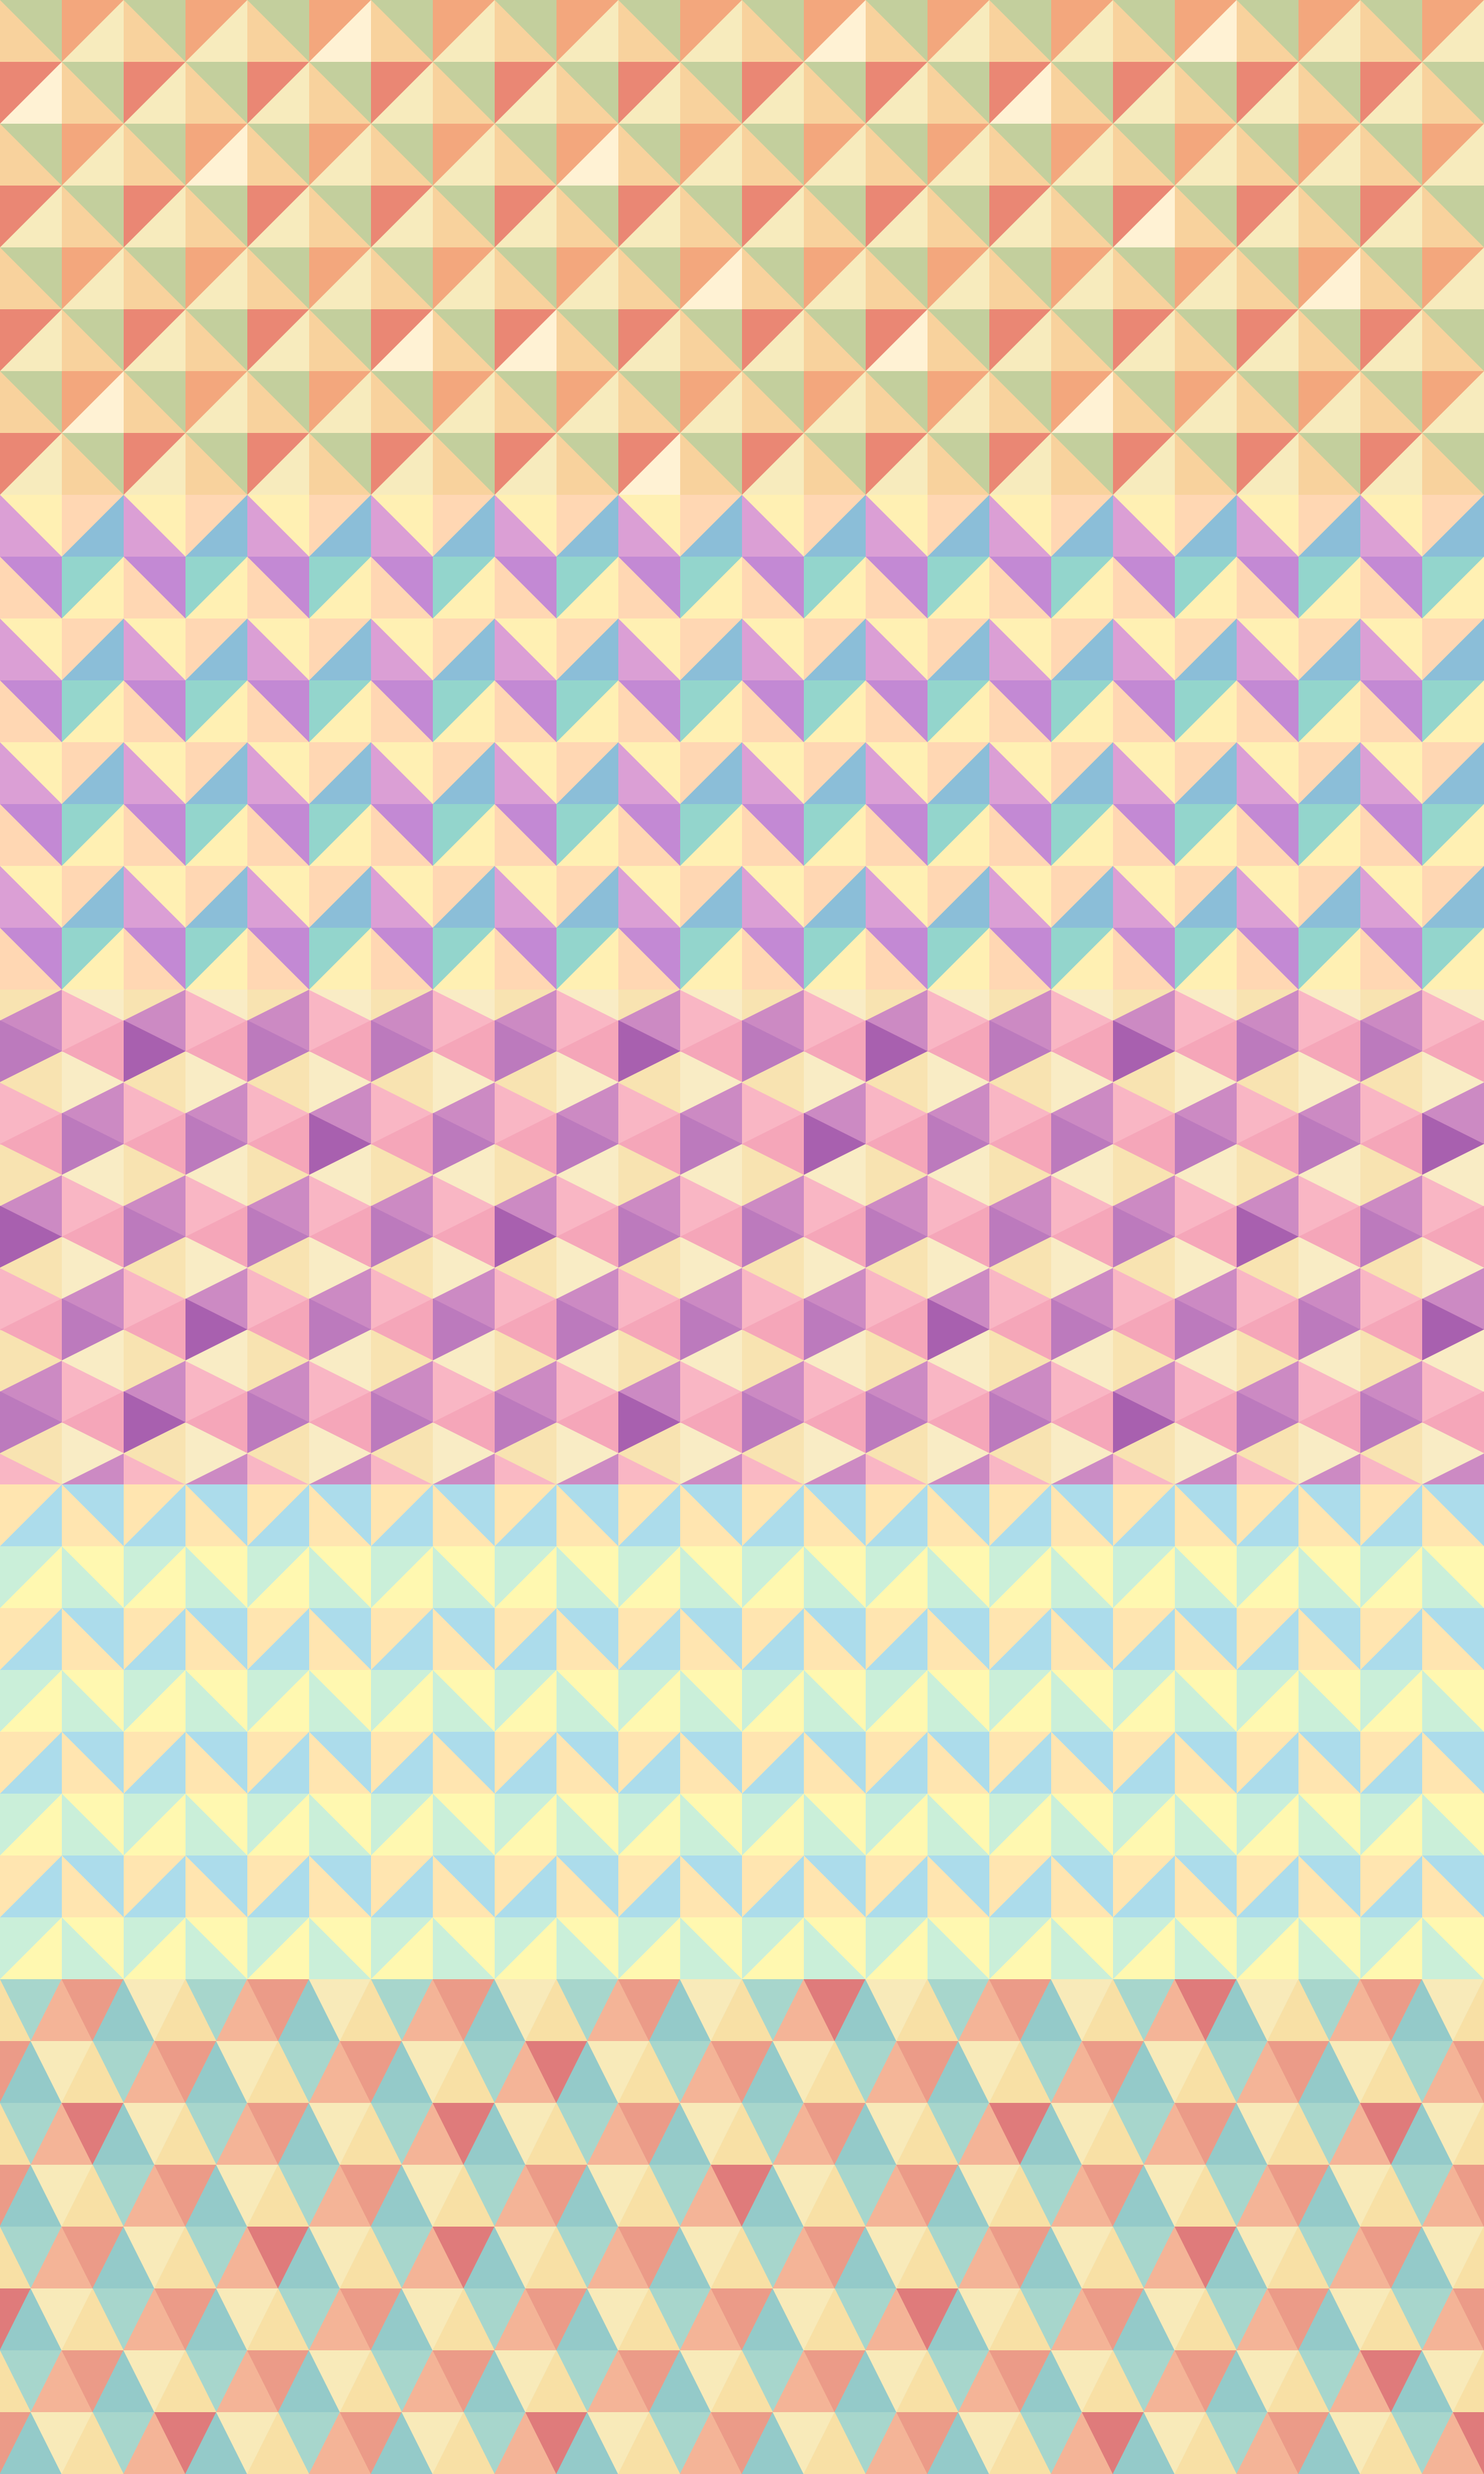 Polygon Backgrounds(check pattern) PSD